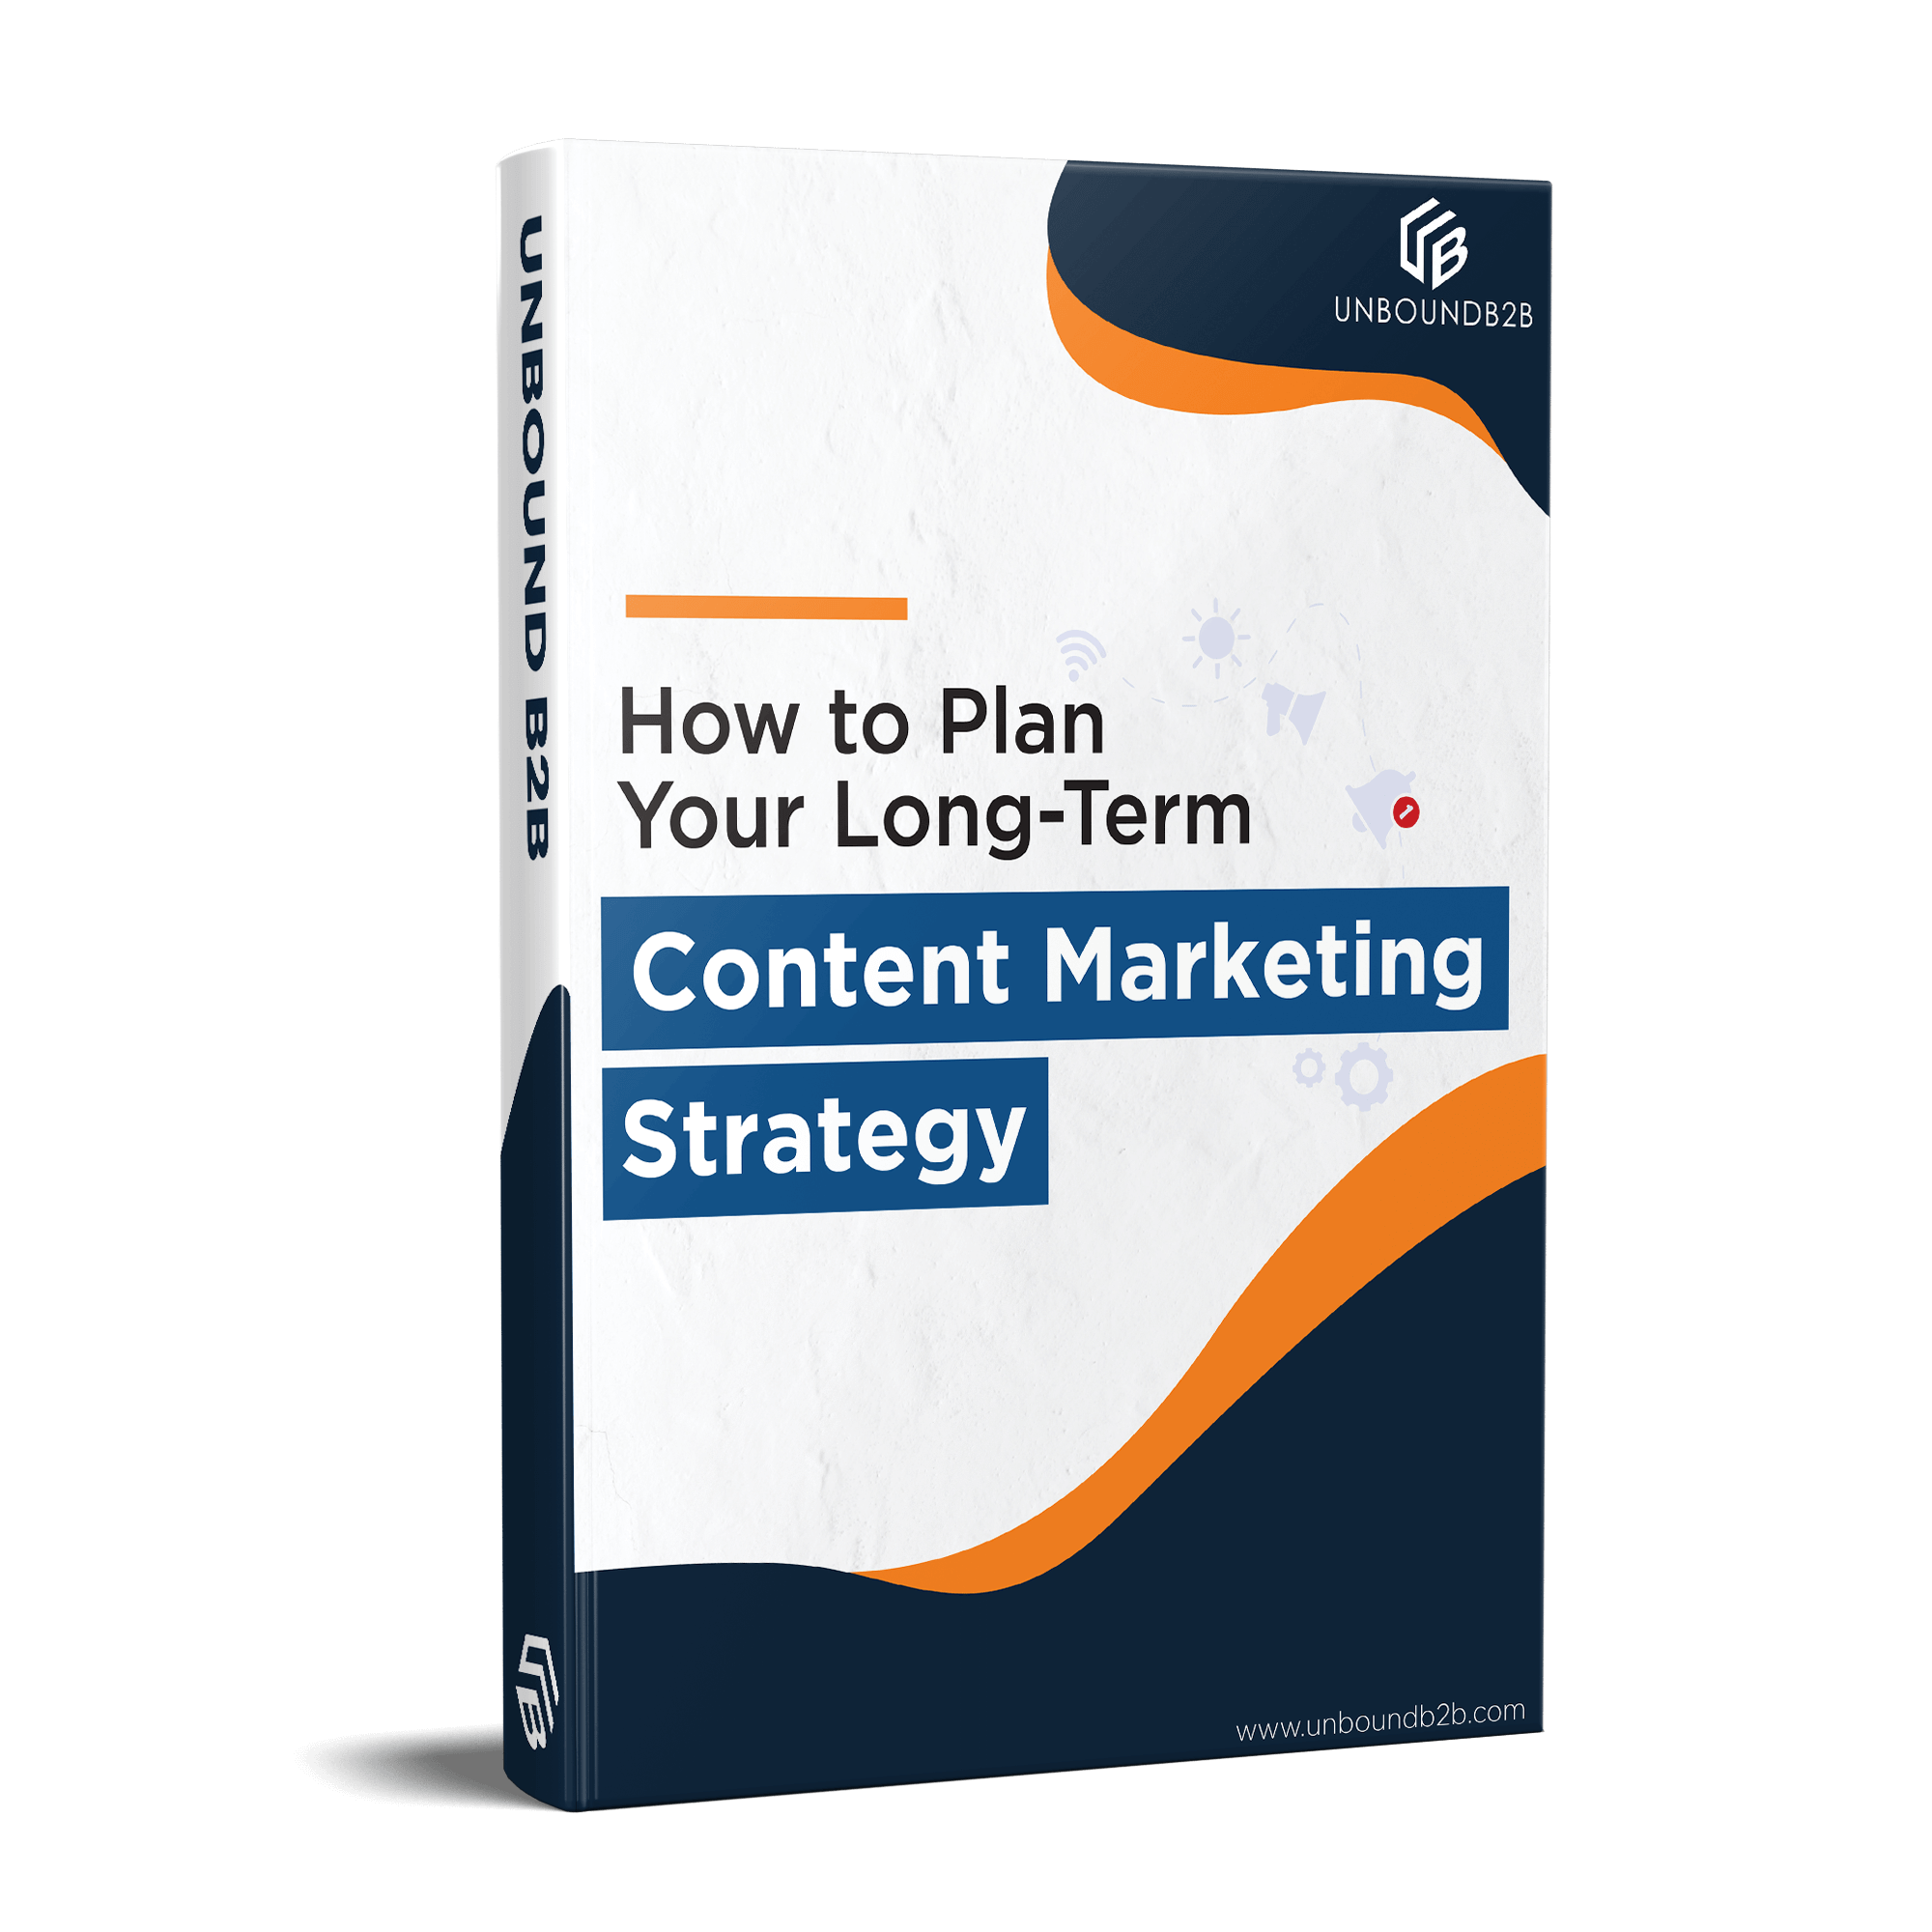 How to Plan Your Long-Term Content Marketing Strategy